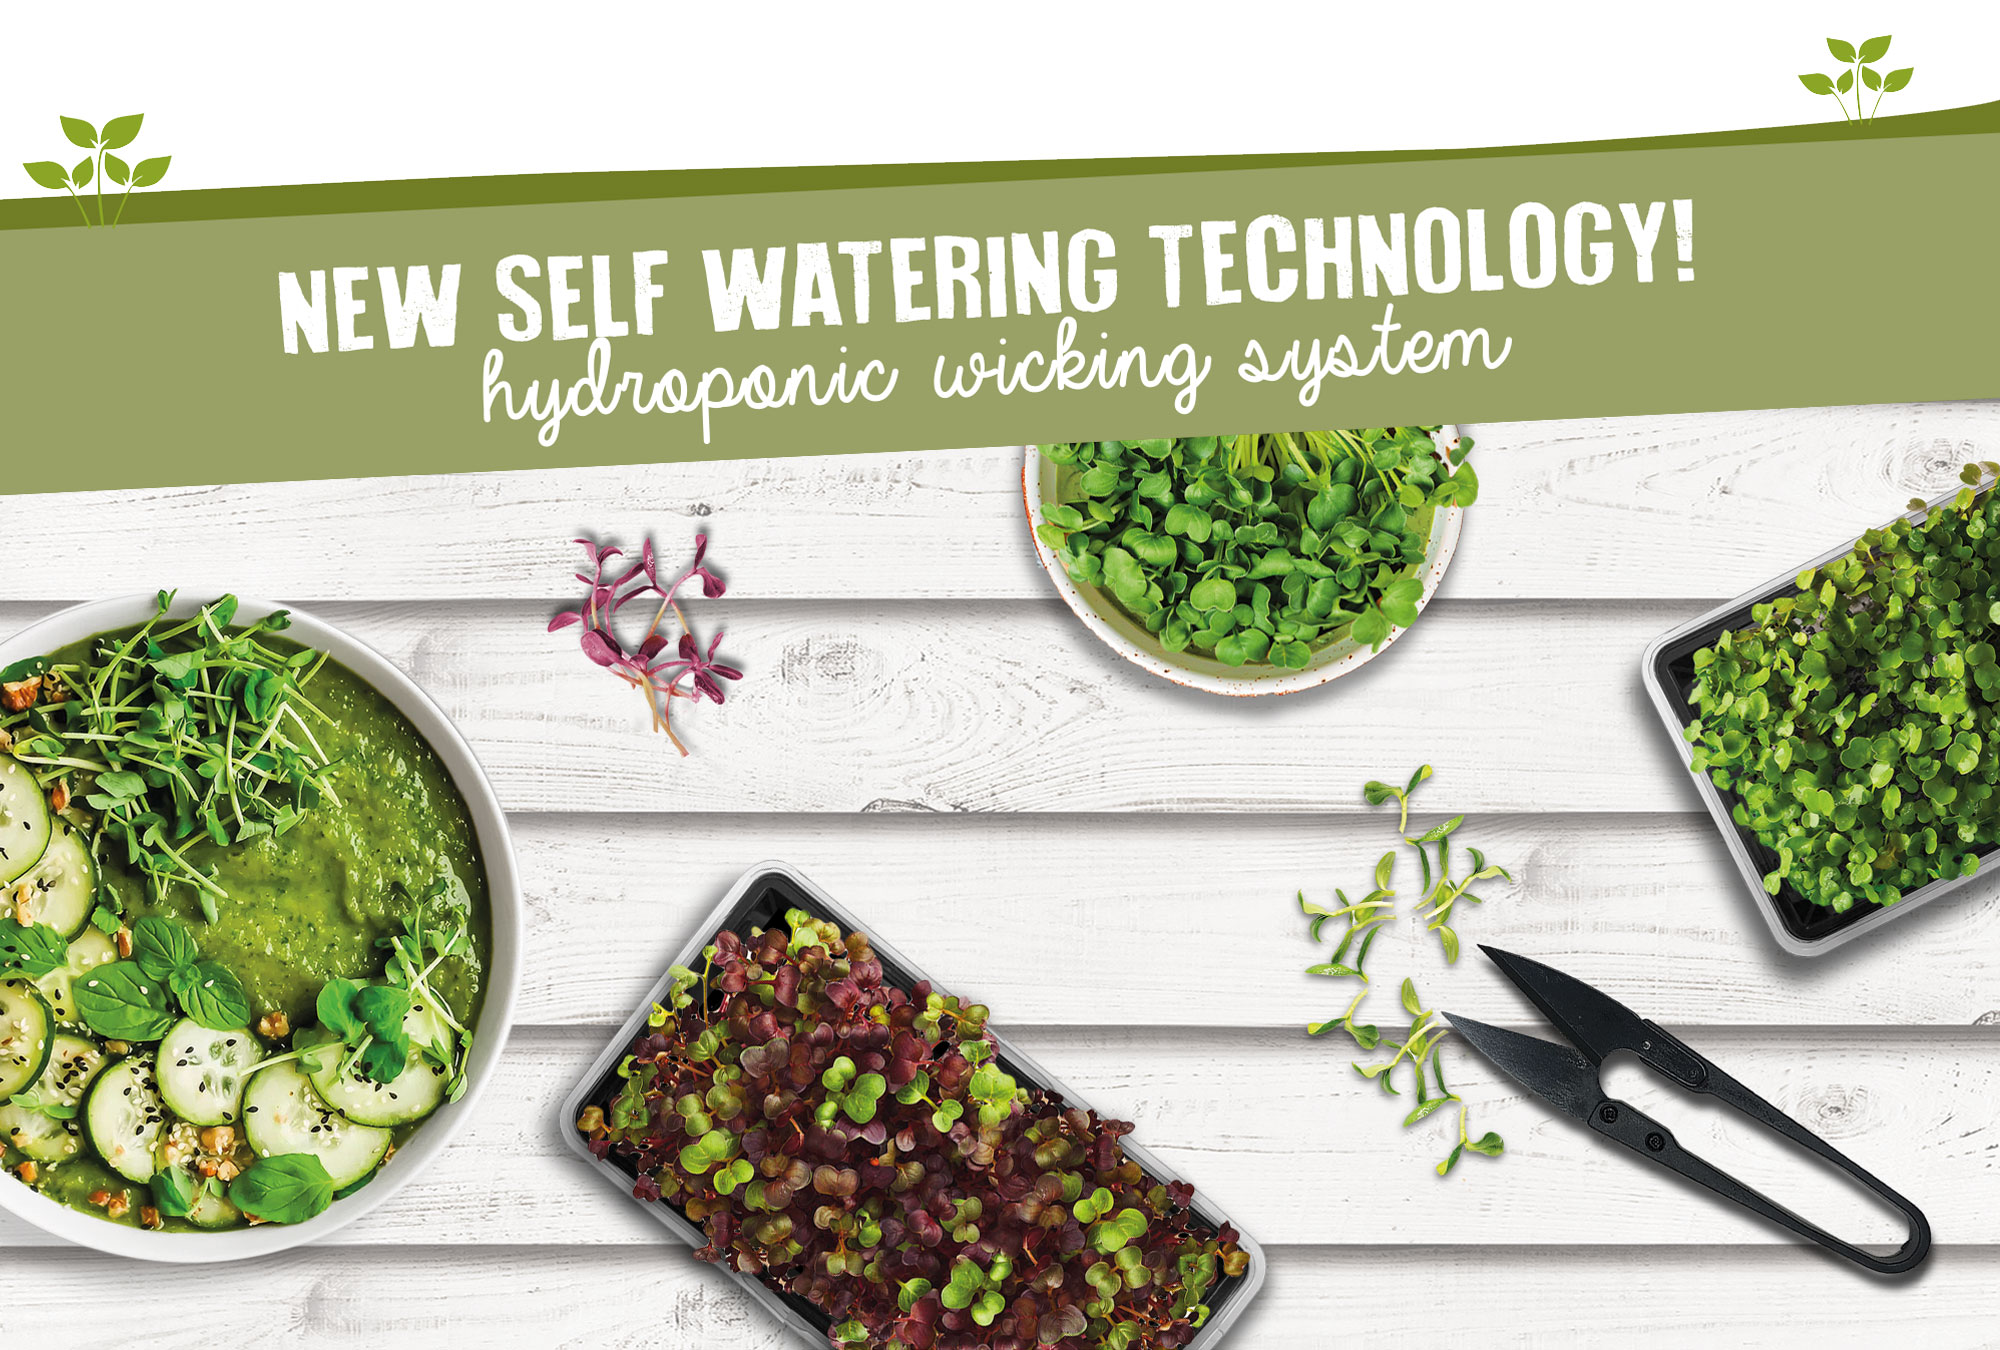 New Self Watering Technology! Hydroponic Wicking System